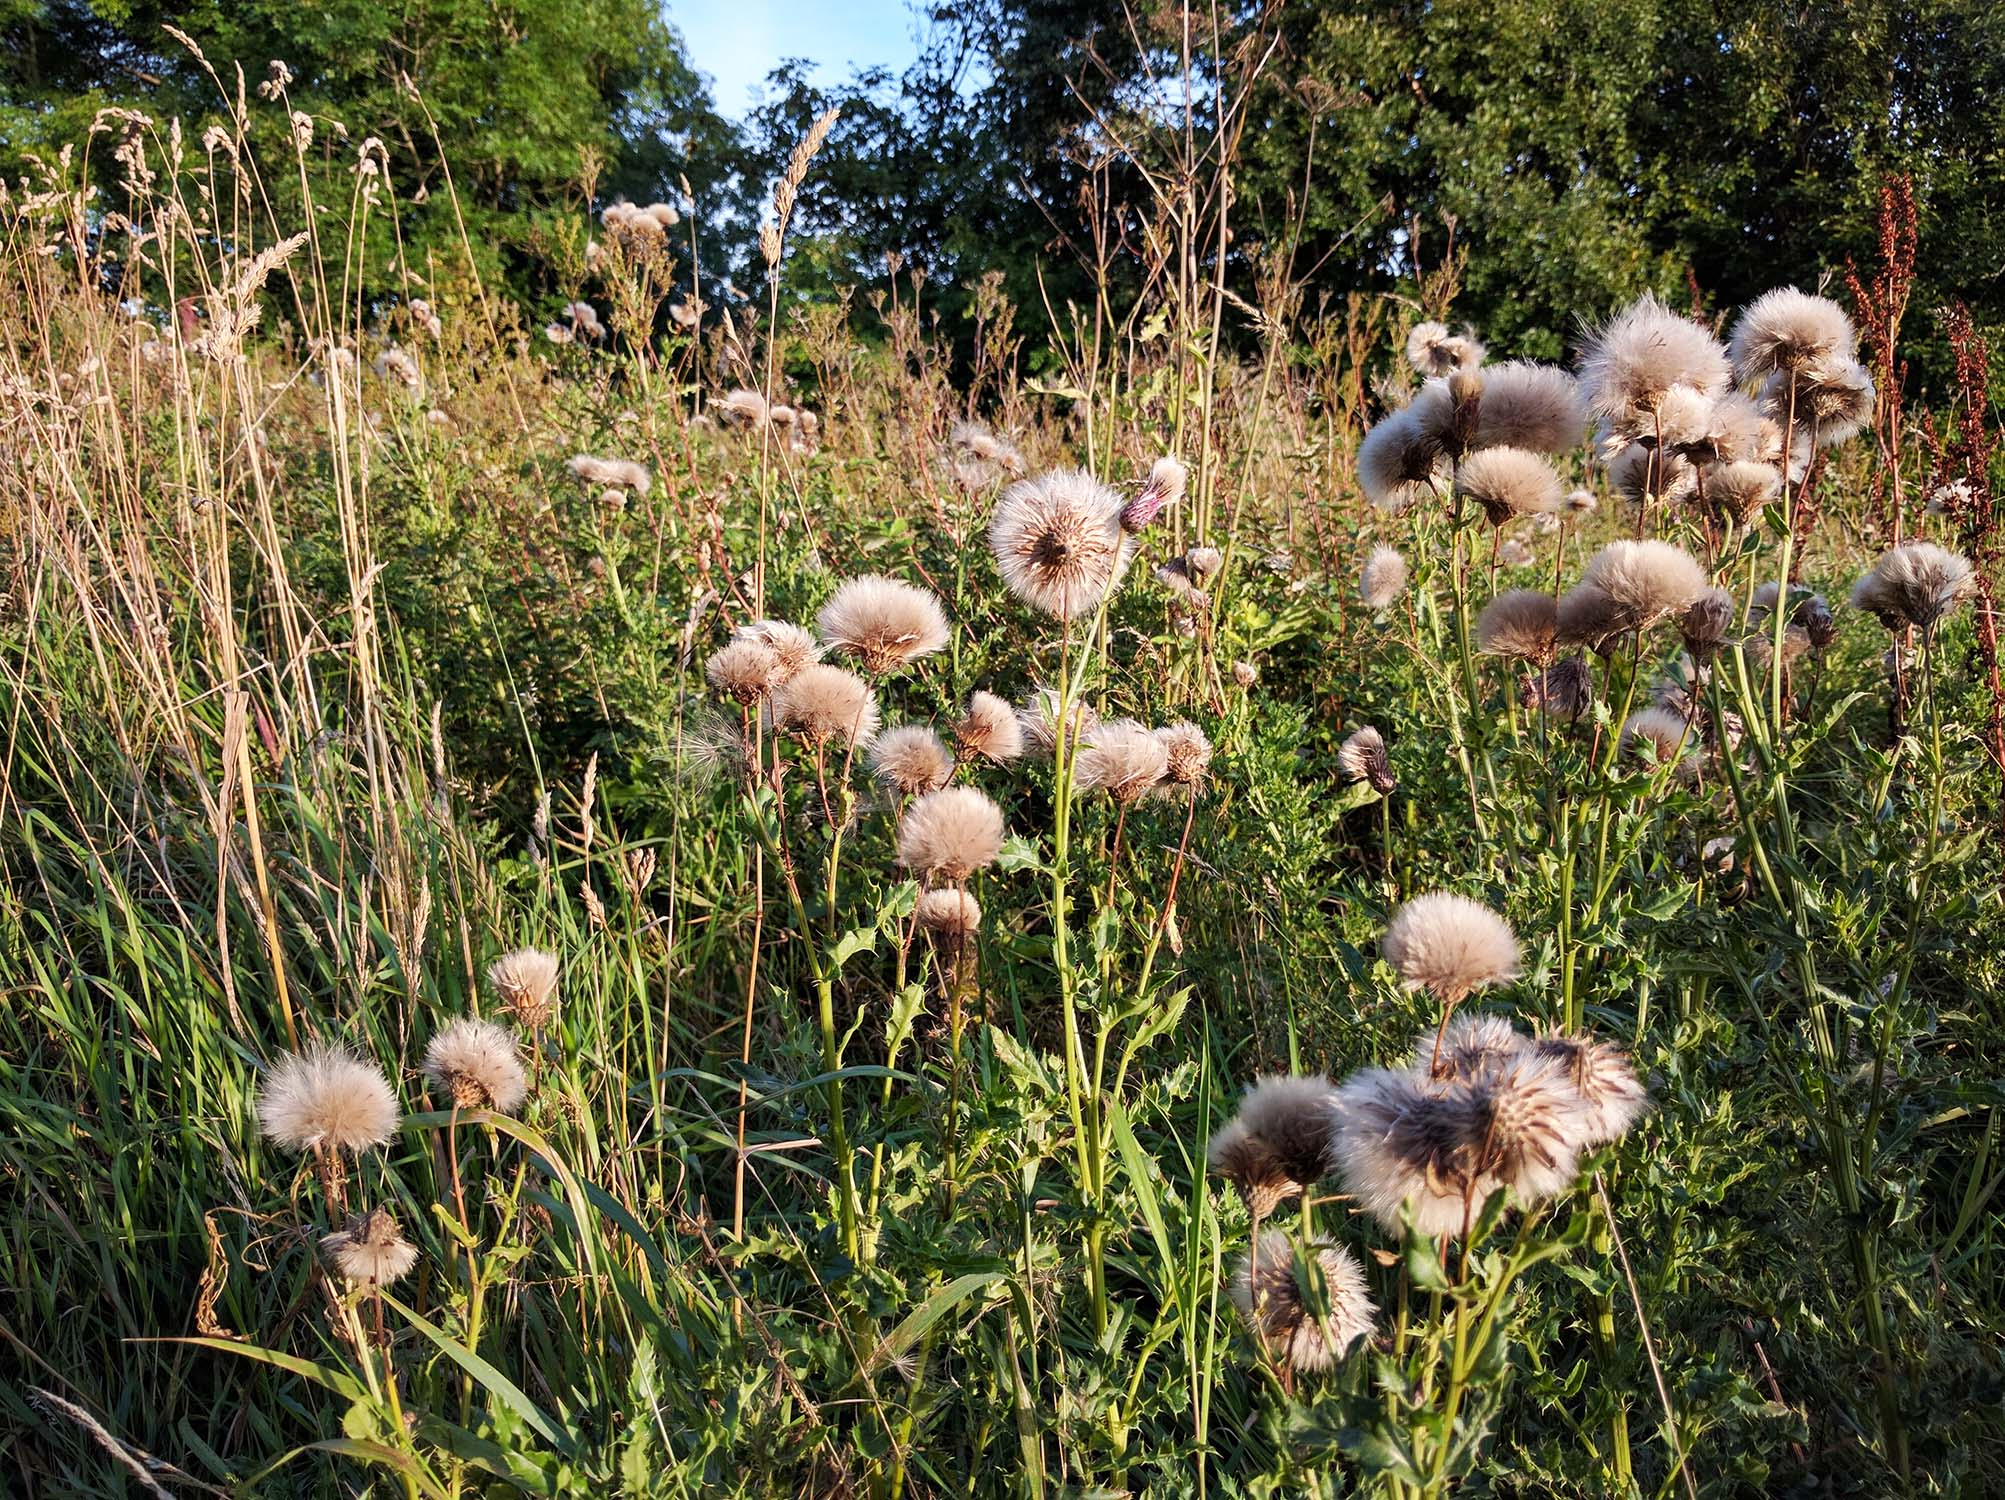 Finding inspiration: wild flowers